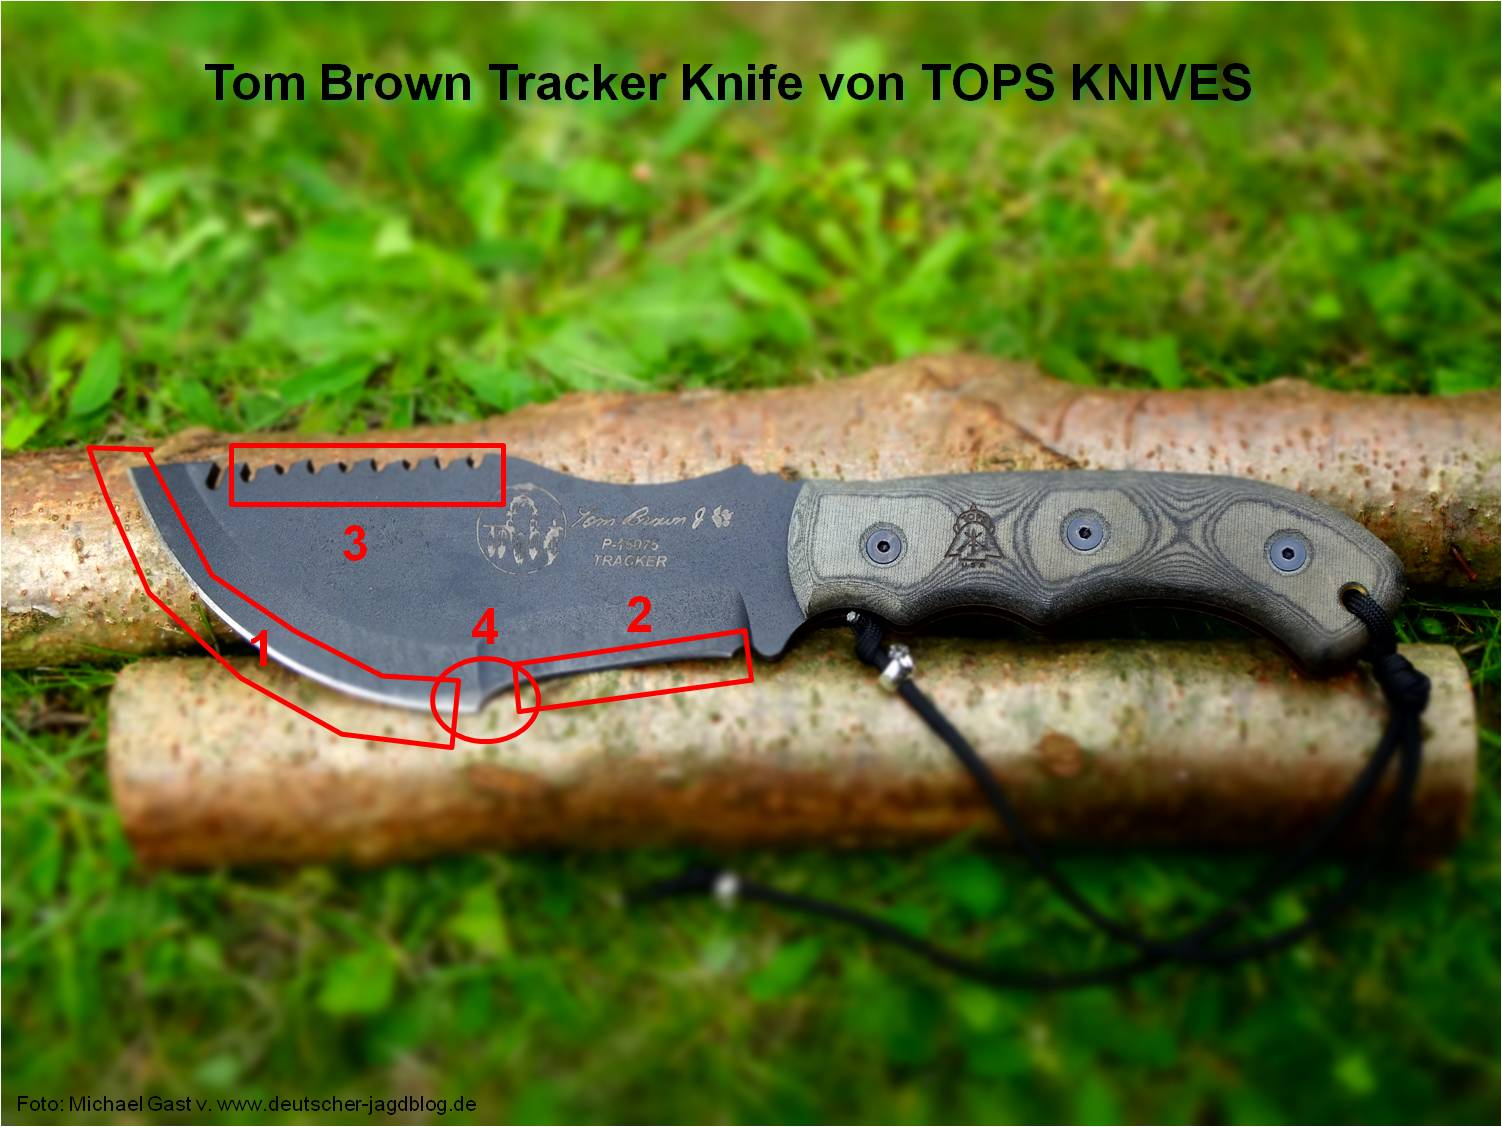 Tom Brown Tracker Knife